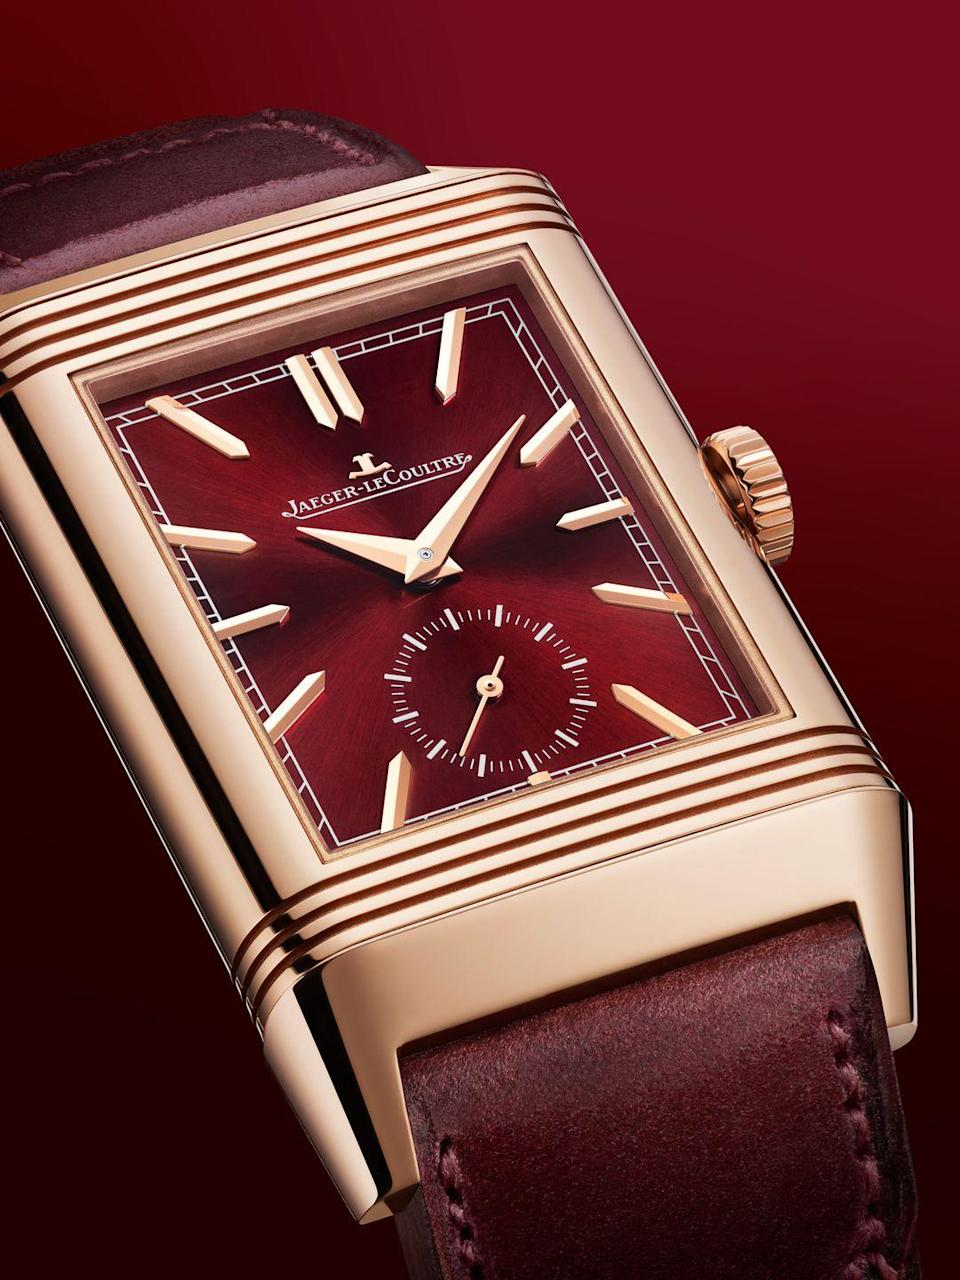 """<p>Jaeger-LeCoultre has dubbed 2021 """"the year of Reverso"""" in honour of the flippable watch's 90th anniversary. To tee-up a bunch of upcoming launches, they've released this beautiful burgundy Reverso Tribute Limited Duoface. One side shows the time with """"dauphine"""" hour and minute hands, a small seconds and sword-tipped baton hour markers. The reverse has a second time zone with day/night indicator, and features a hobnail """"Clous De Paris"""" guilloché finish. £21,100;<a href=""""https://www.jaeger-lecoultre.com/us/en/home-page.html"""" rel=""""nofollow noopener"""" target=""""_blank"""" data-ylk=""""slk:jaeger-lecoultre.com"""" class=""""link rapid-noclick-resp""""> jaeger-lecoultre.com</a></p>"""